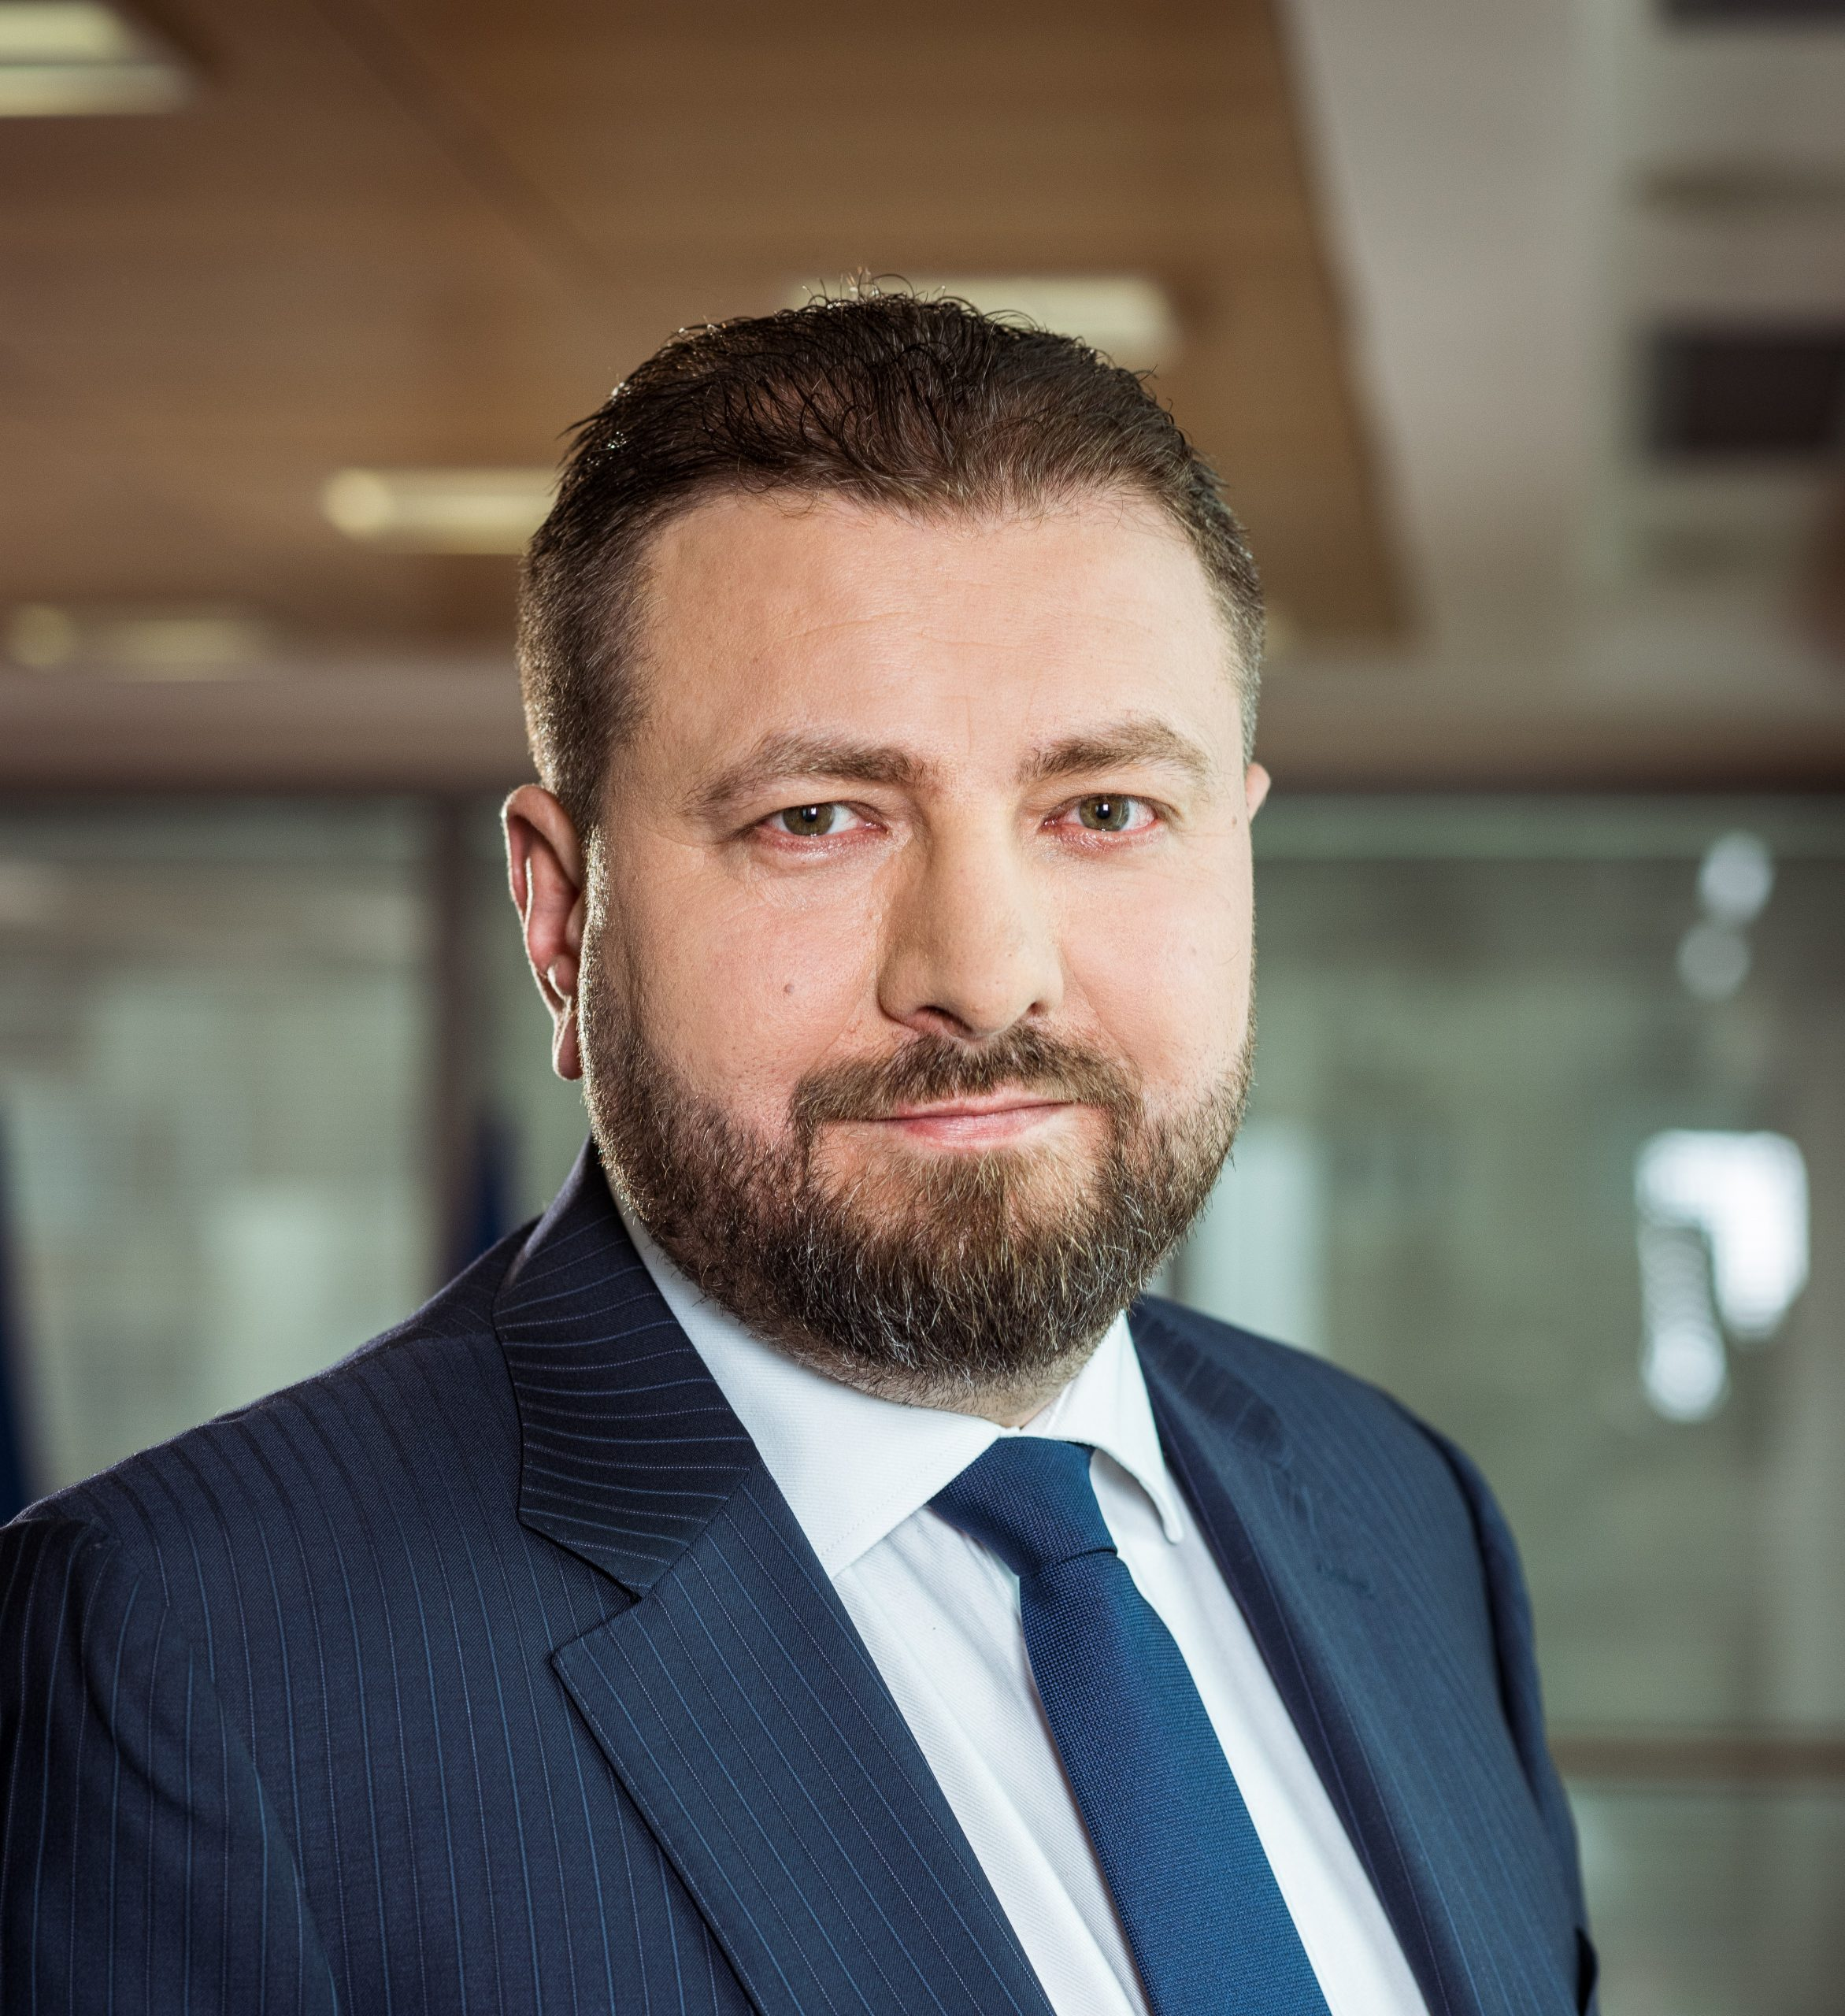 Marian Năstase – Chairman and non-executive member of the Board of Directors, Vimetco ALRO